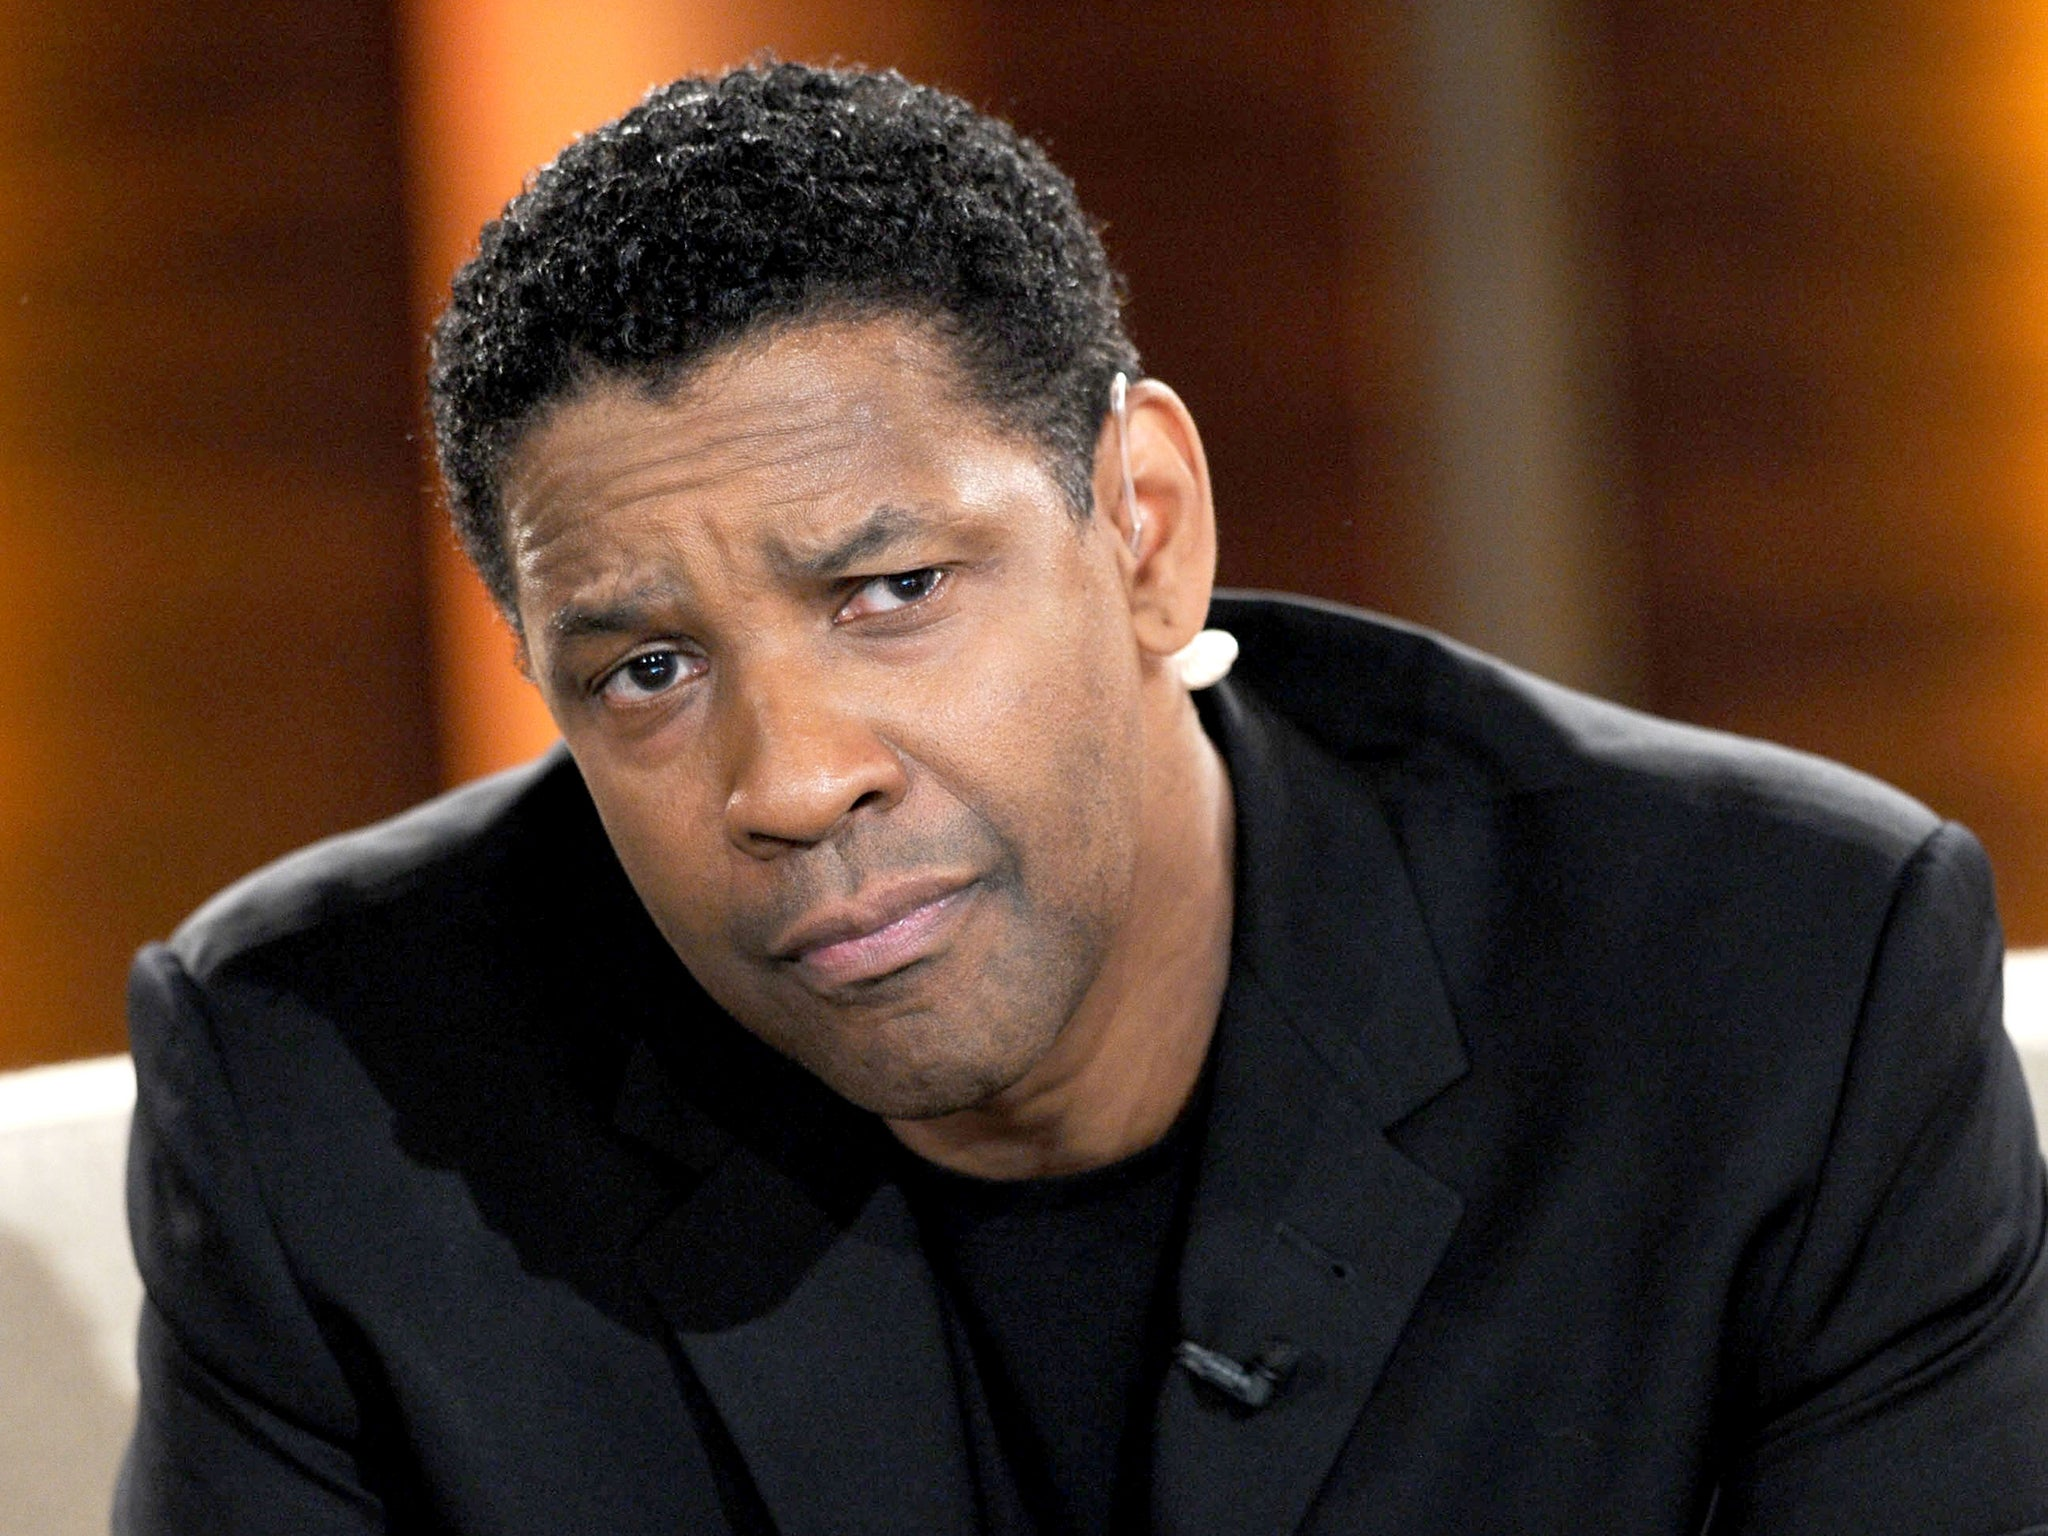 denzel washington fencesdenzel washington films, denzel washington filmleri, denzel washington wiki, denzel washington fences, denzel washington vse filmi, denzel washington movies, denzel washington kino, denzel washington filme, denzel washington son, denzel washington filmografia, denzel washington height, denzel washington 2017, denzel washington trump, denzel washington family, denzel washington filmebi, denzel washington net worth, denzel washington filmebi qartulad, denzel washington new movie, denzel washington new movie 2016, denzel washington gif